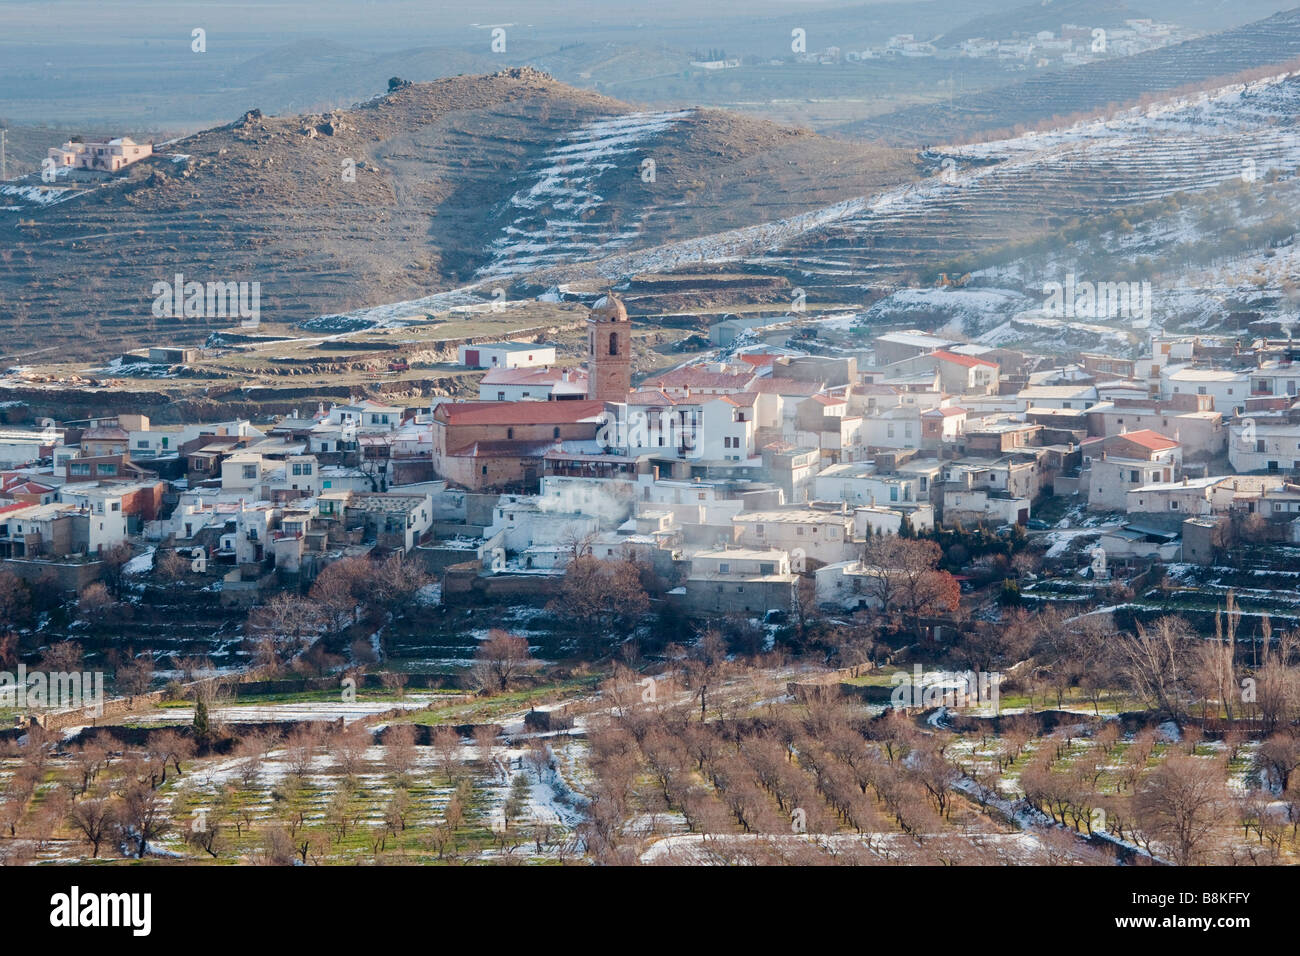 ferreira granada province spain stock photo royalty free image 22556911 alamy